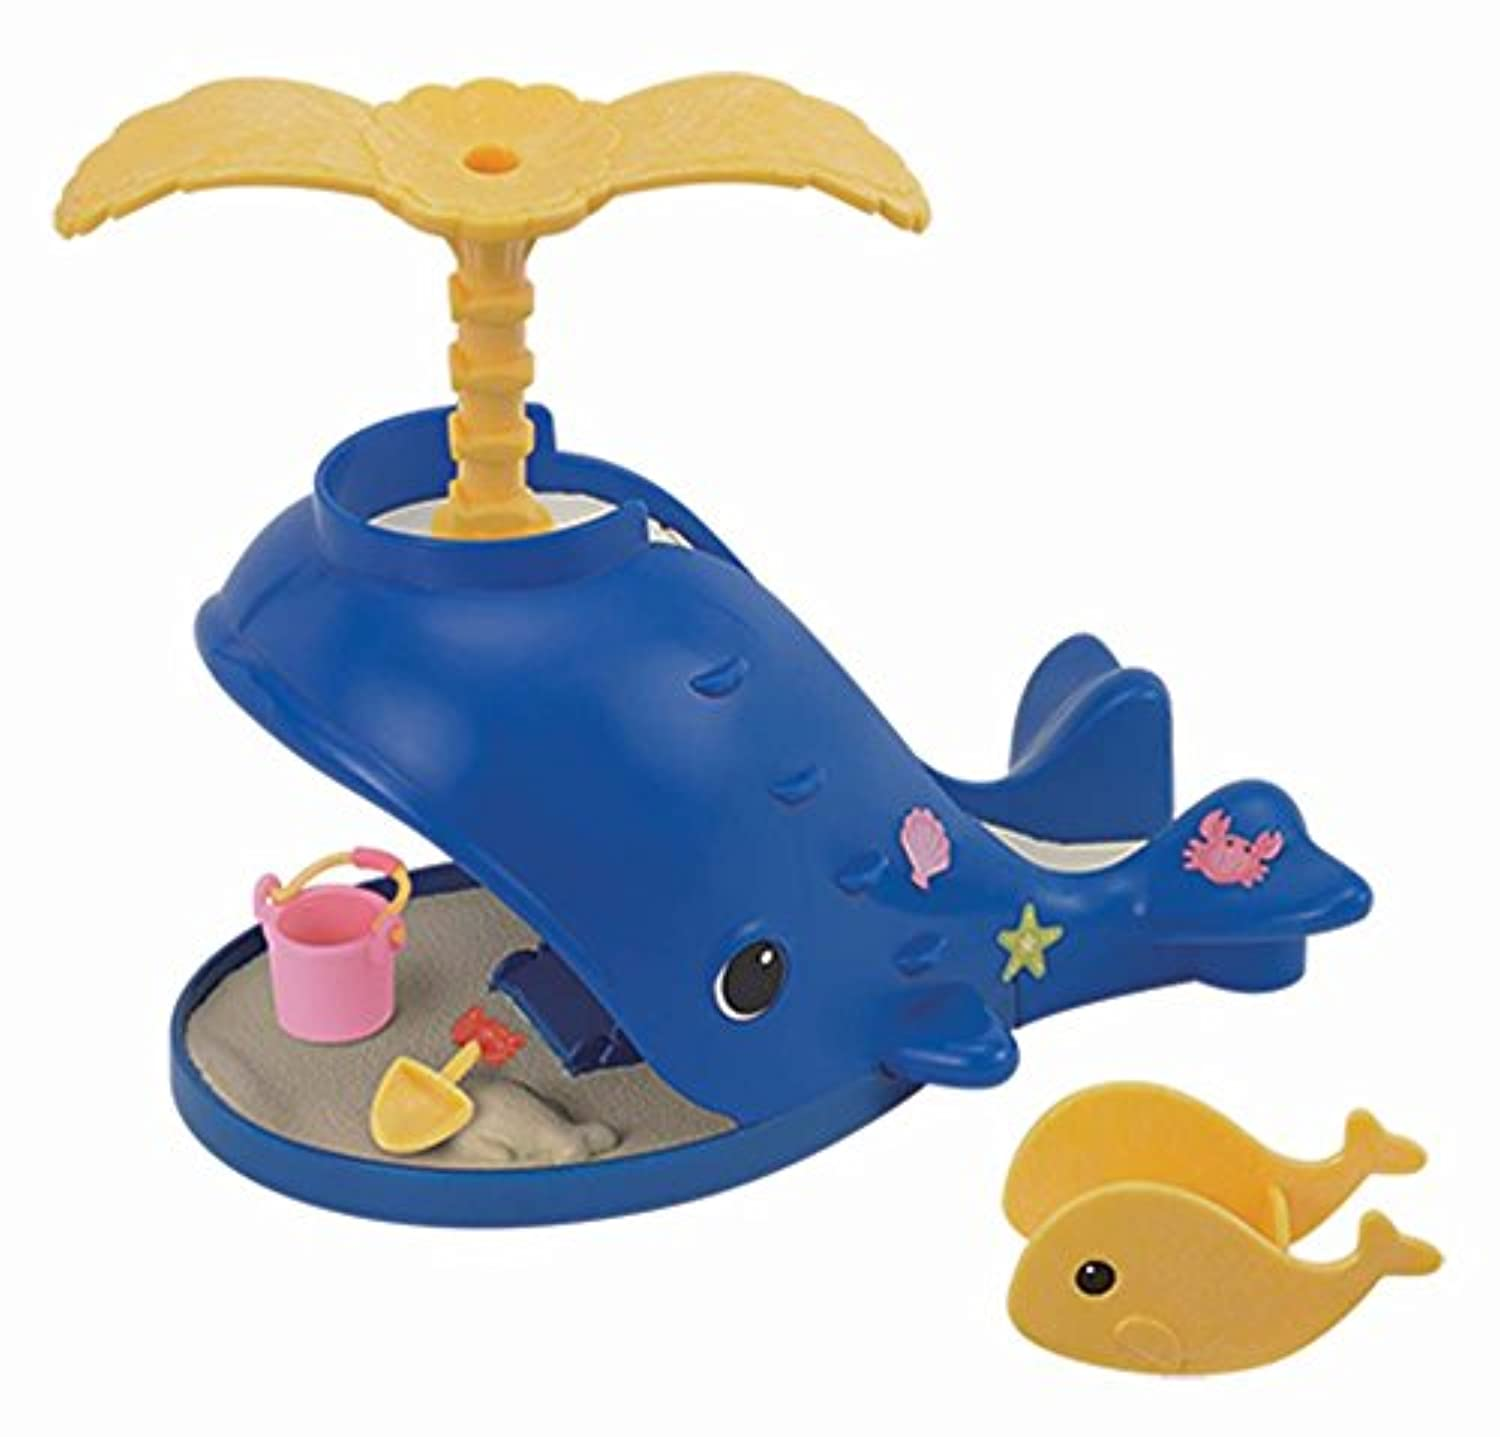 [Calicoクリッター]Calico Critters Splash and Play Whale Playset CC1408 [並行輸入品]